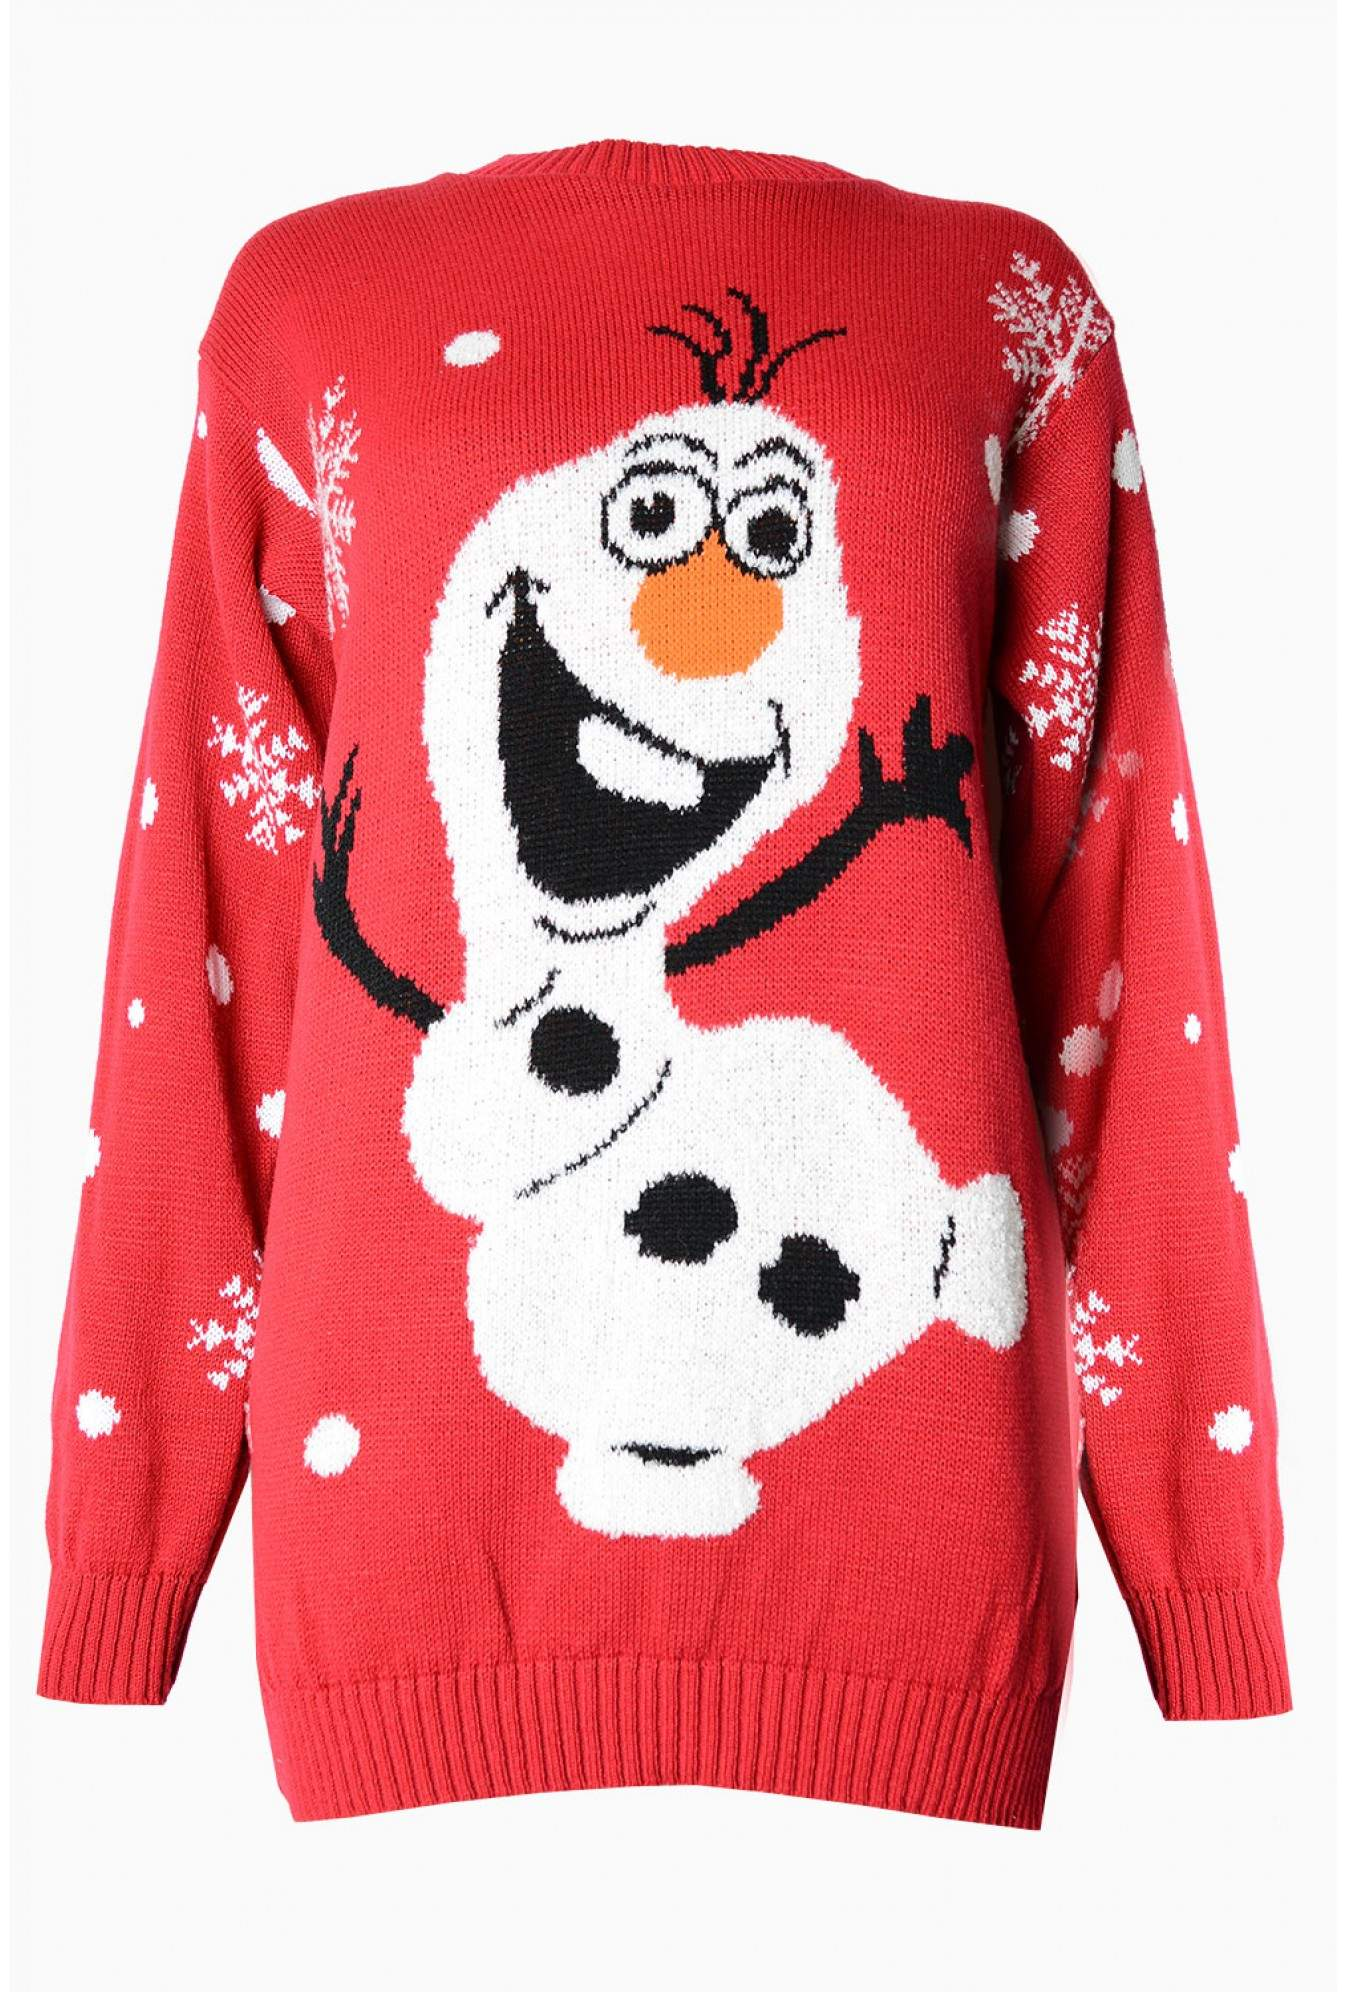 USCO Olaf Christmas Jumper in Red | iCLOTHING